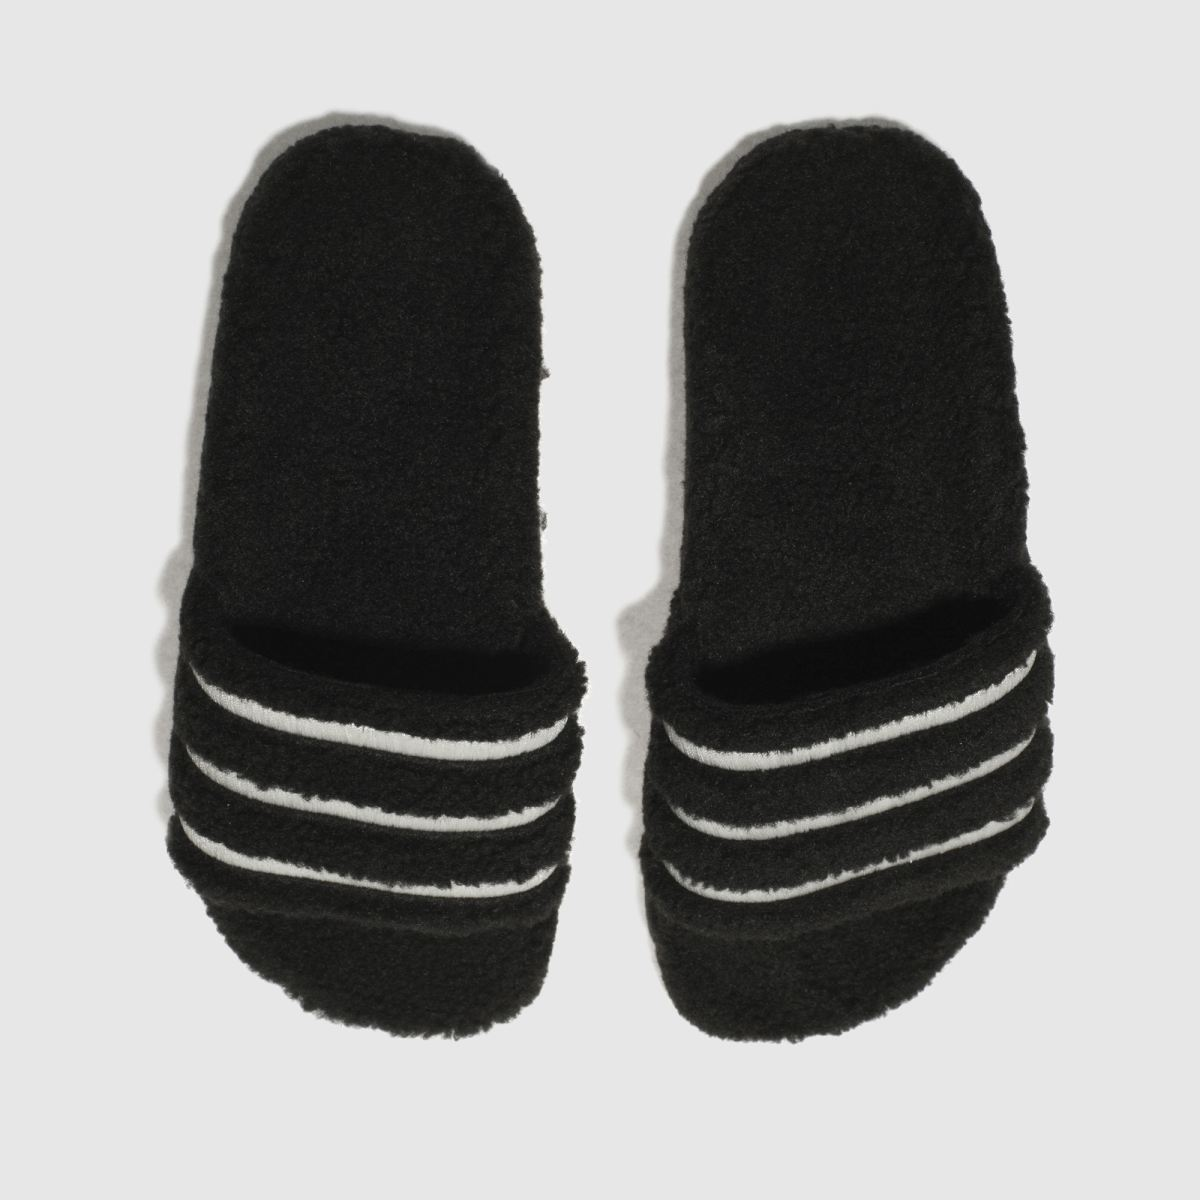 adidas black & white adilette teddy sandals